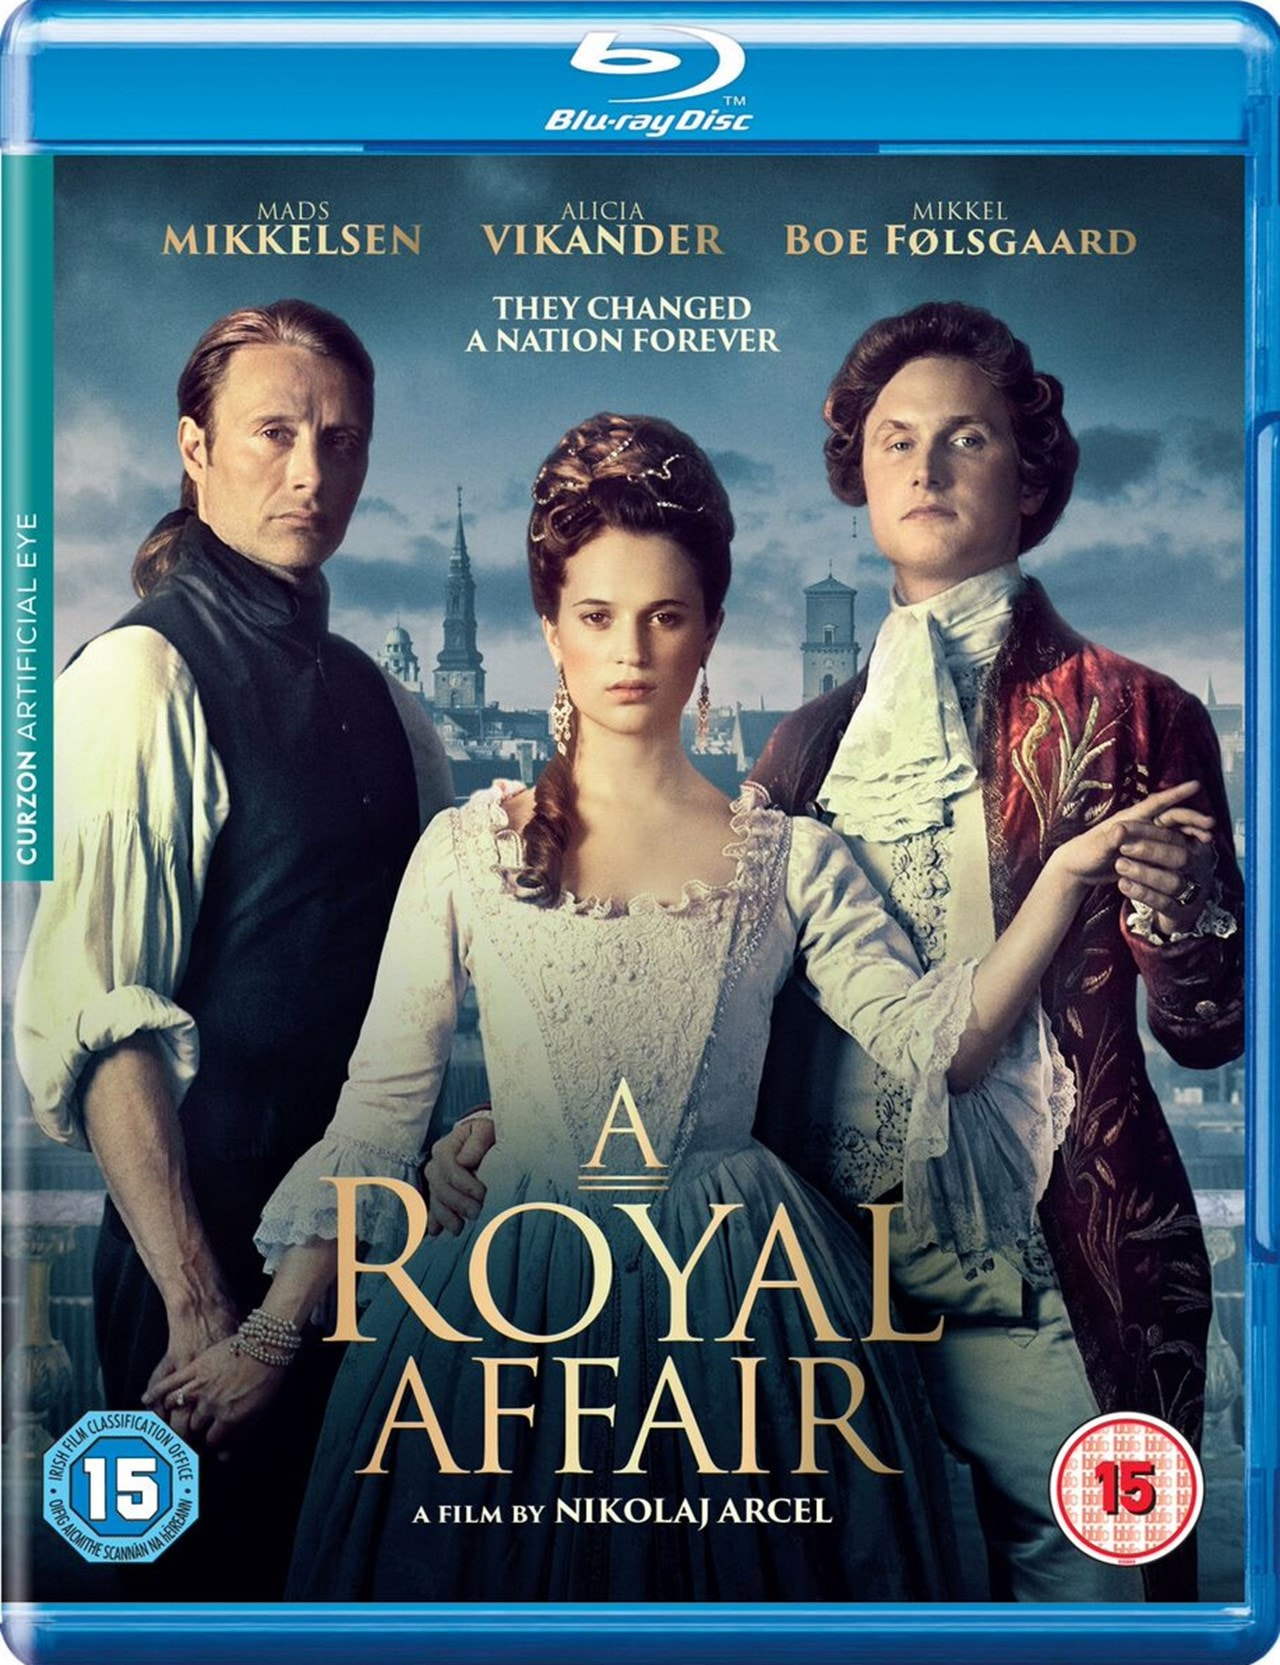 A Royal Affair - 1